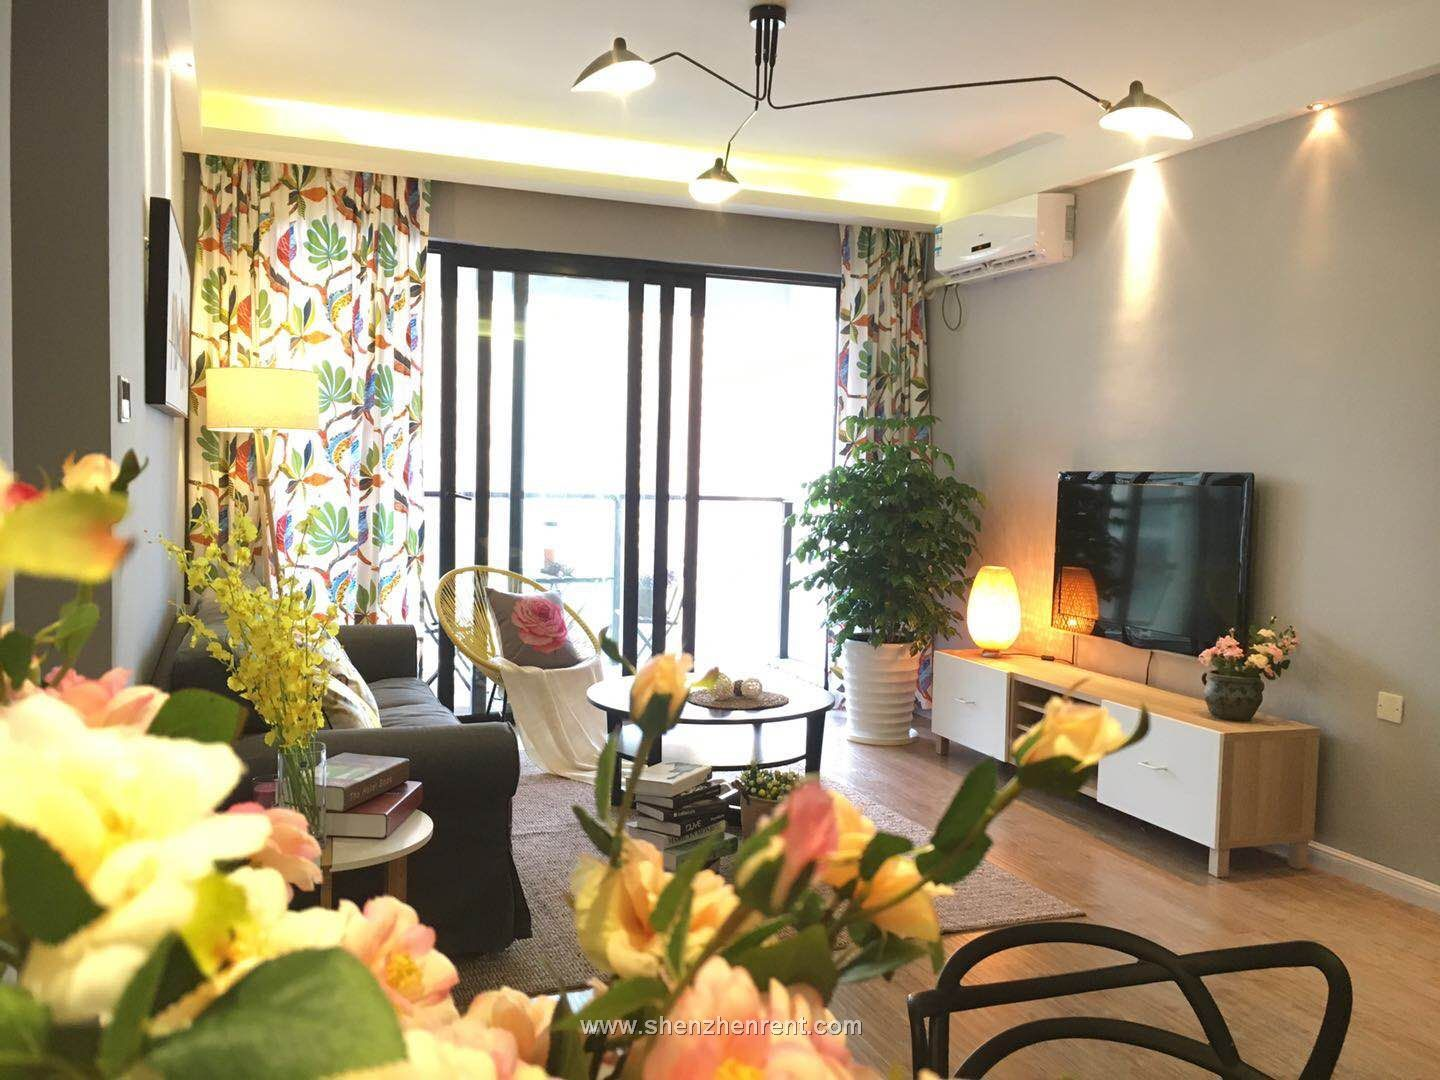 Newly renovated luxurious 2 bedrooms apartment in shekou for rent